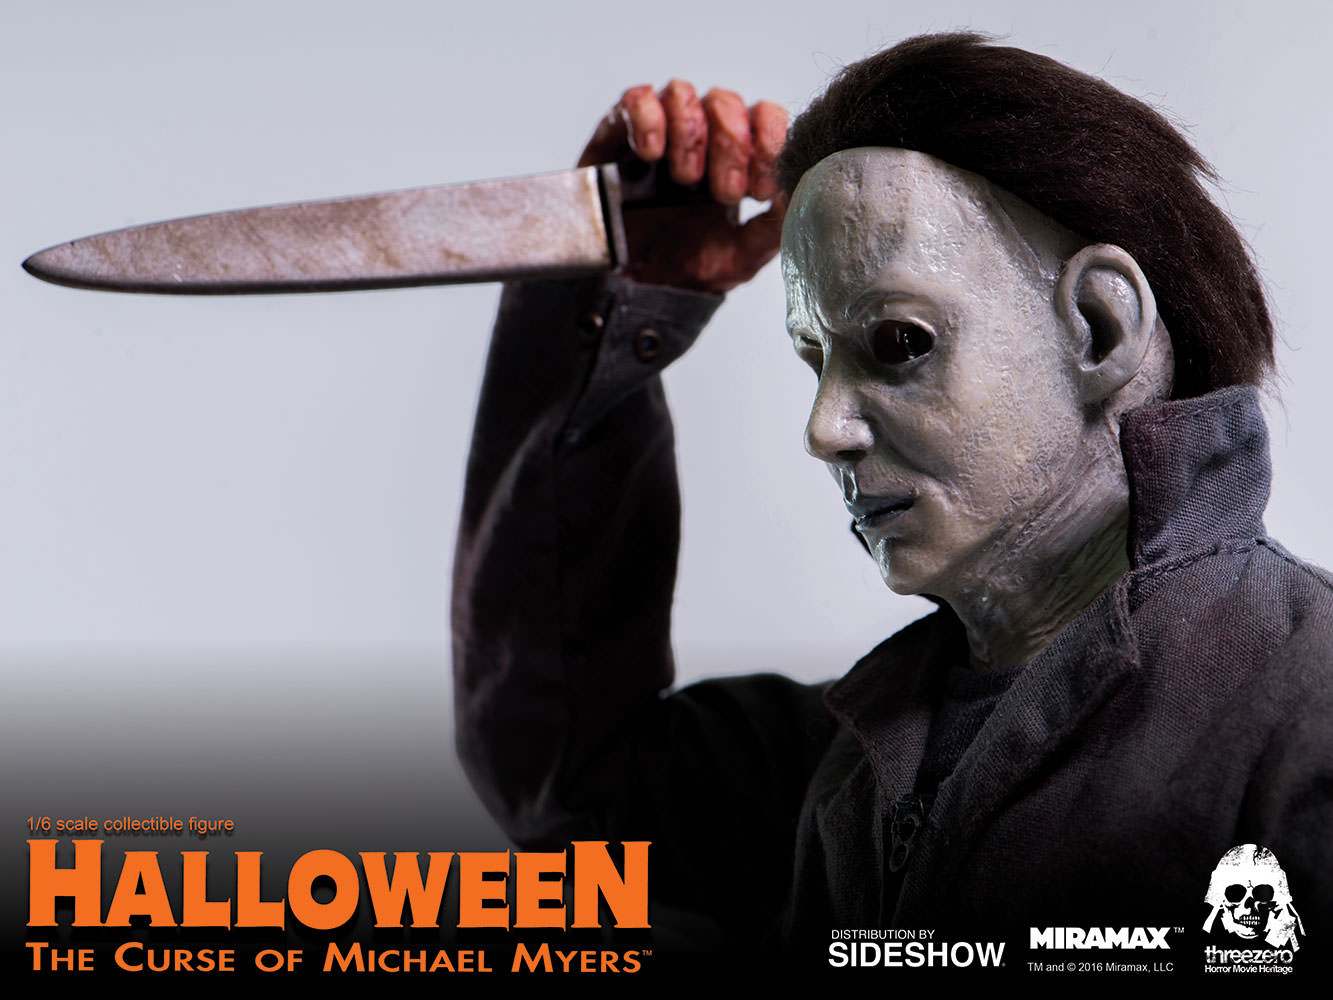 the curse of michael myers sixth scale figure - Halloween 1